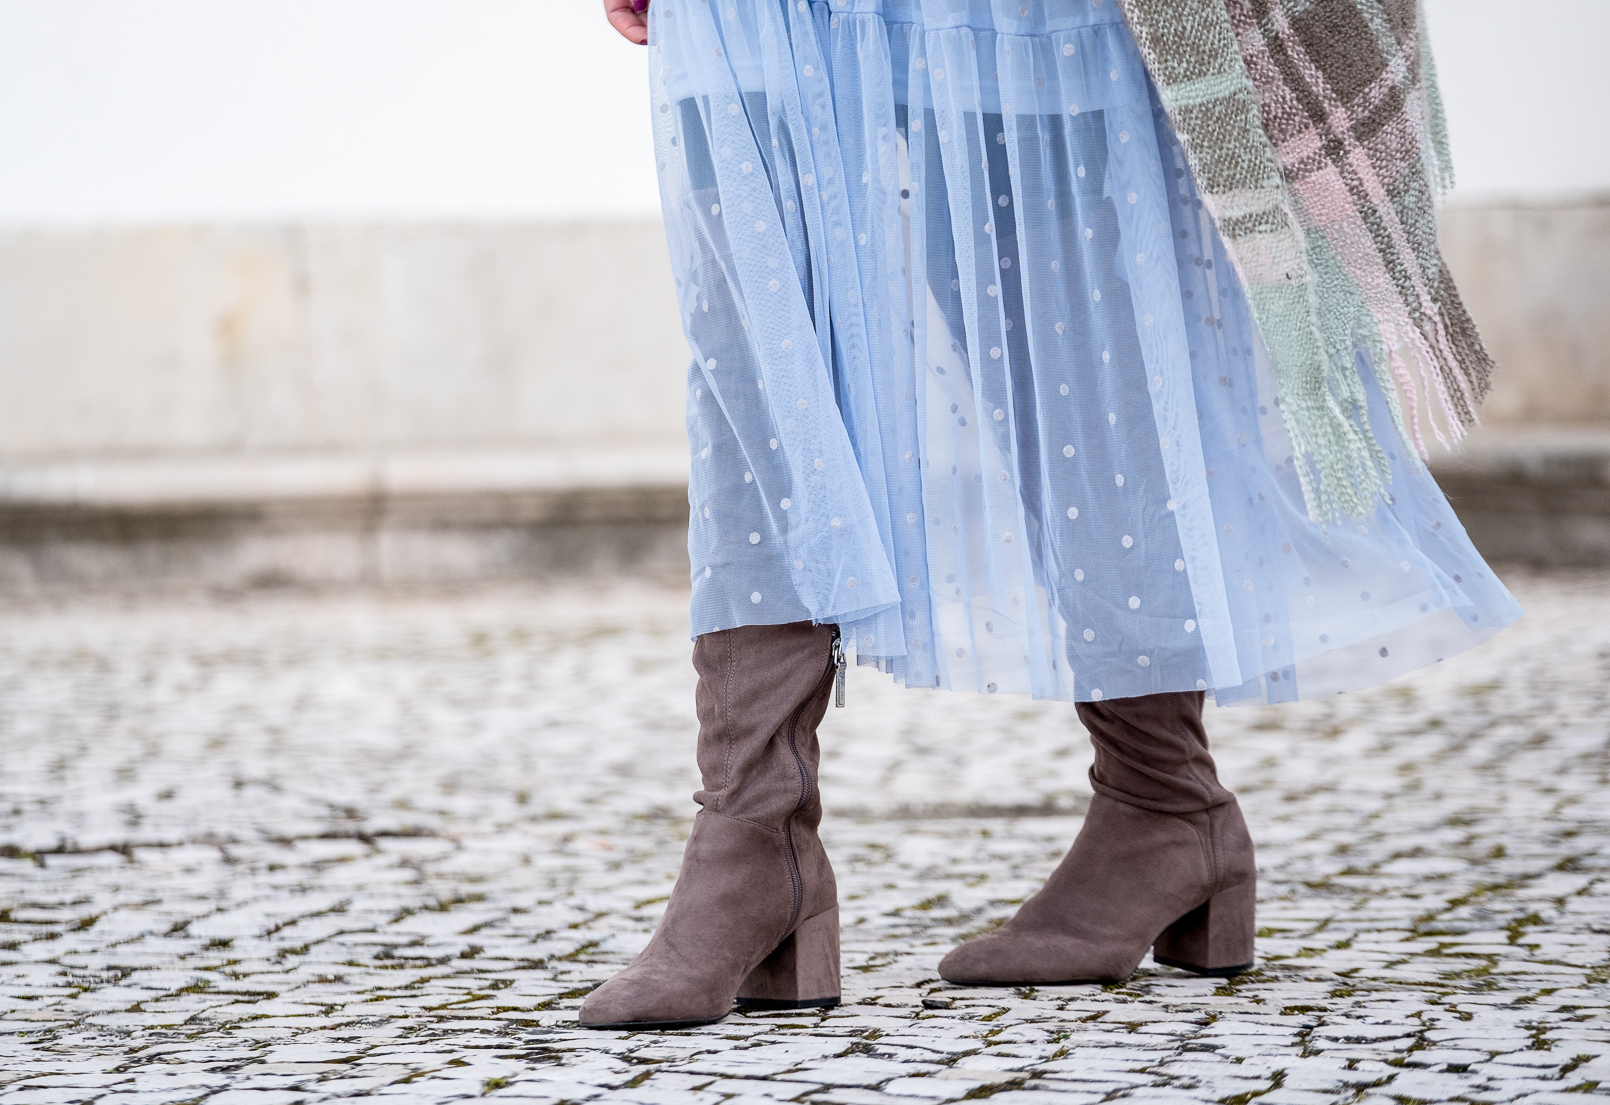 Le Fashionaire baby blue organza dots maxi topshop dress over knee gray suede beshka boots 1867 EN baby blue organza dots maxi topshop dress over knee gray suede beshka boots 1867 EN